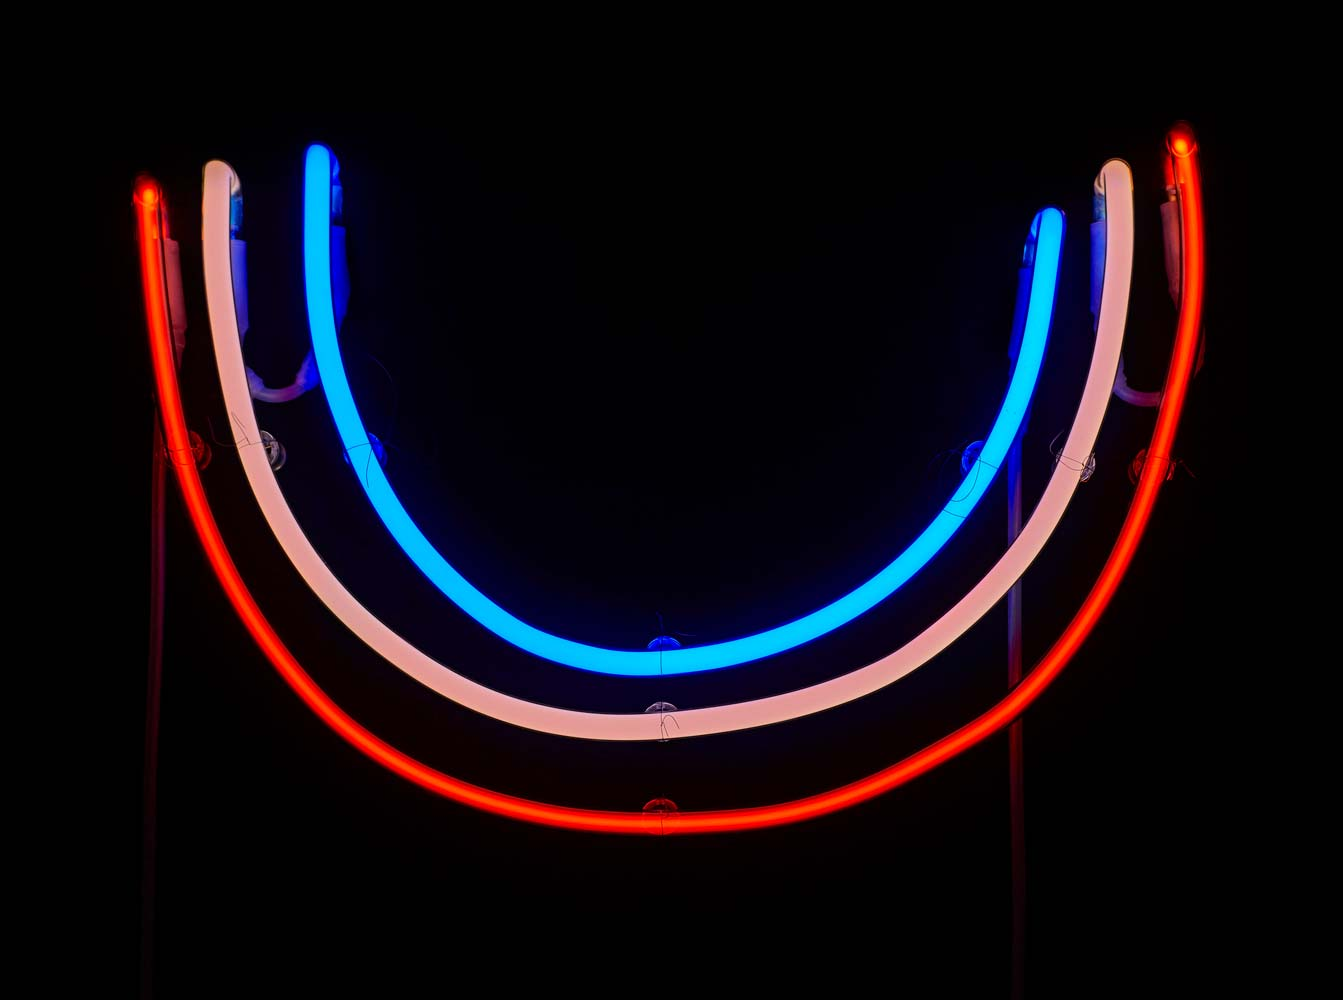 Grit Richter neon sculpture